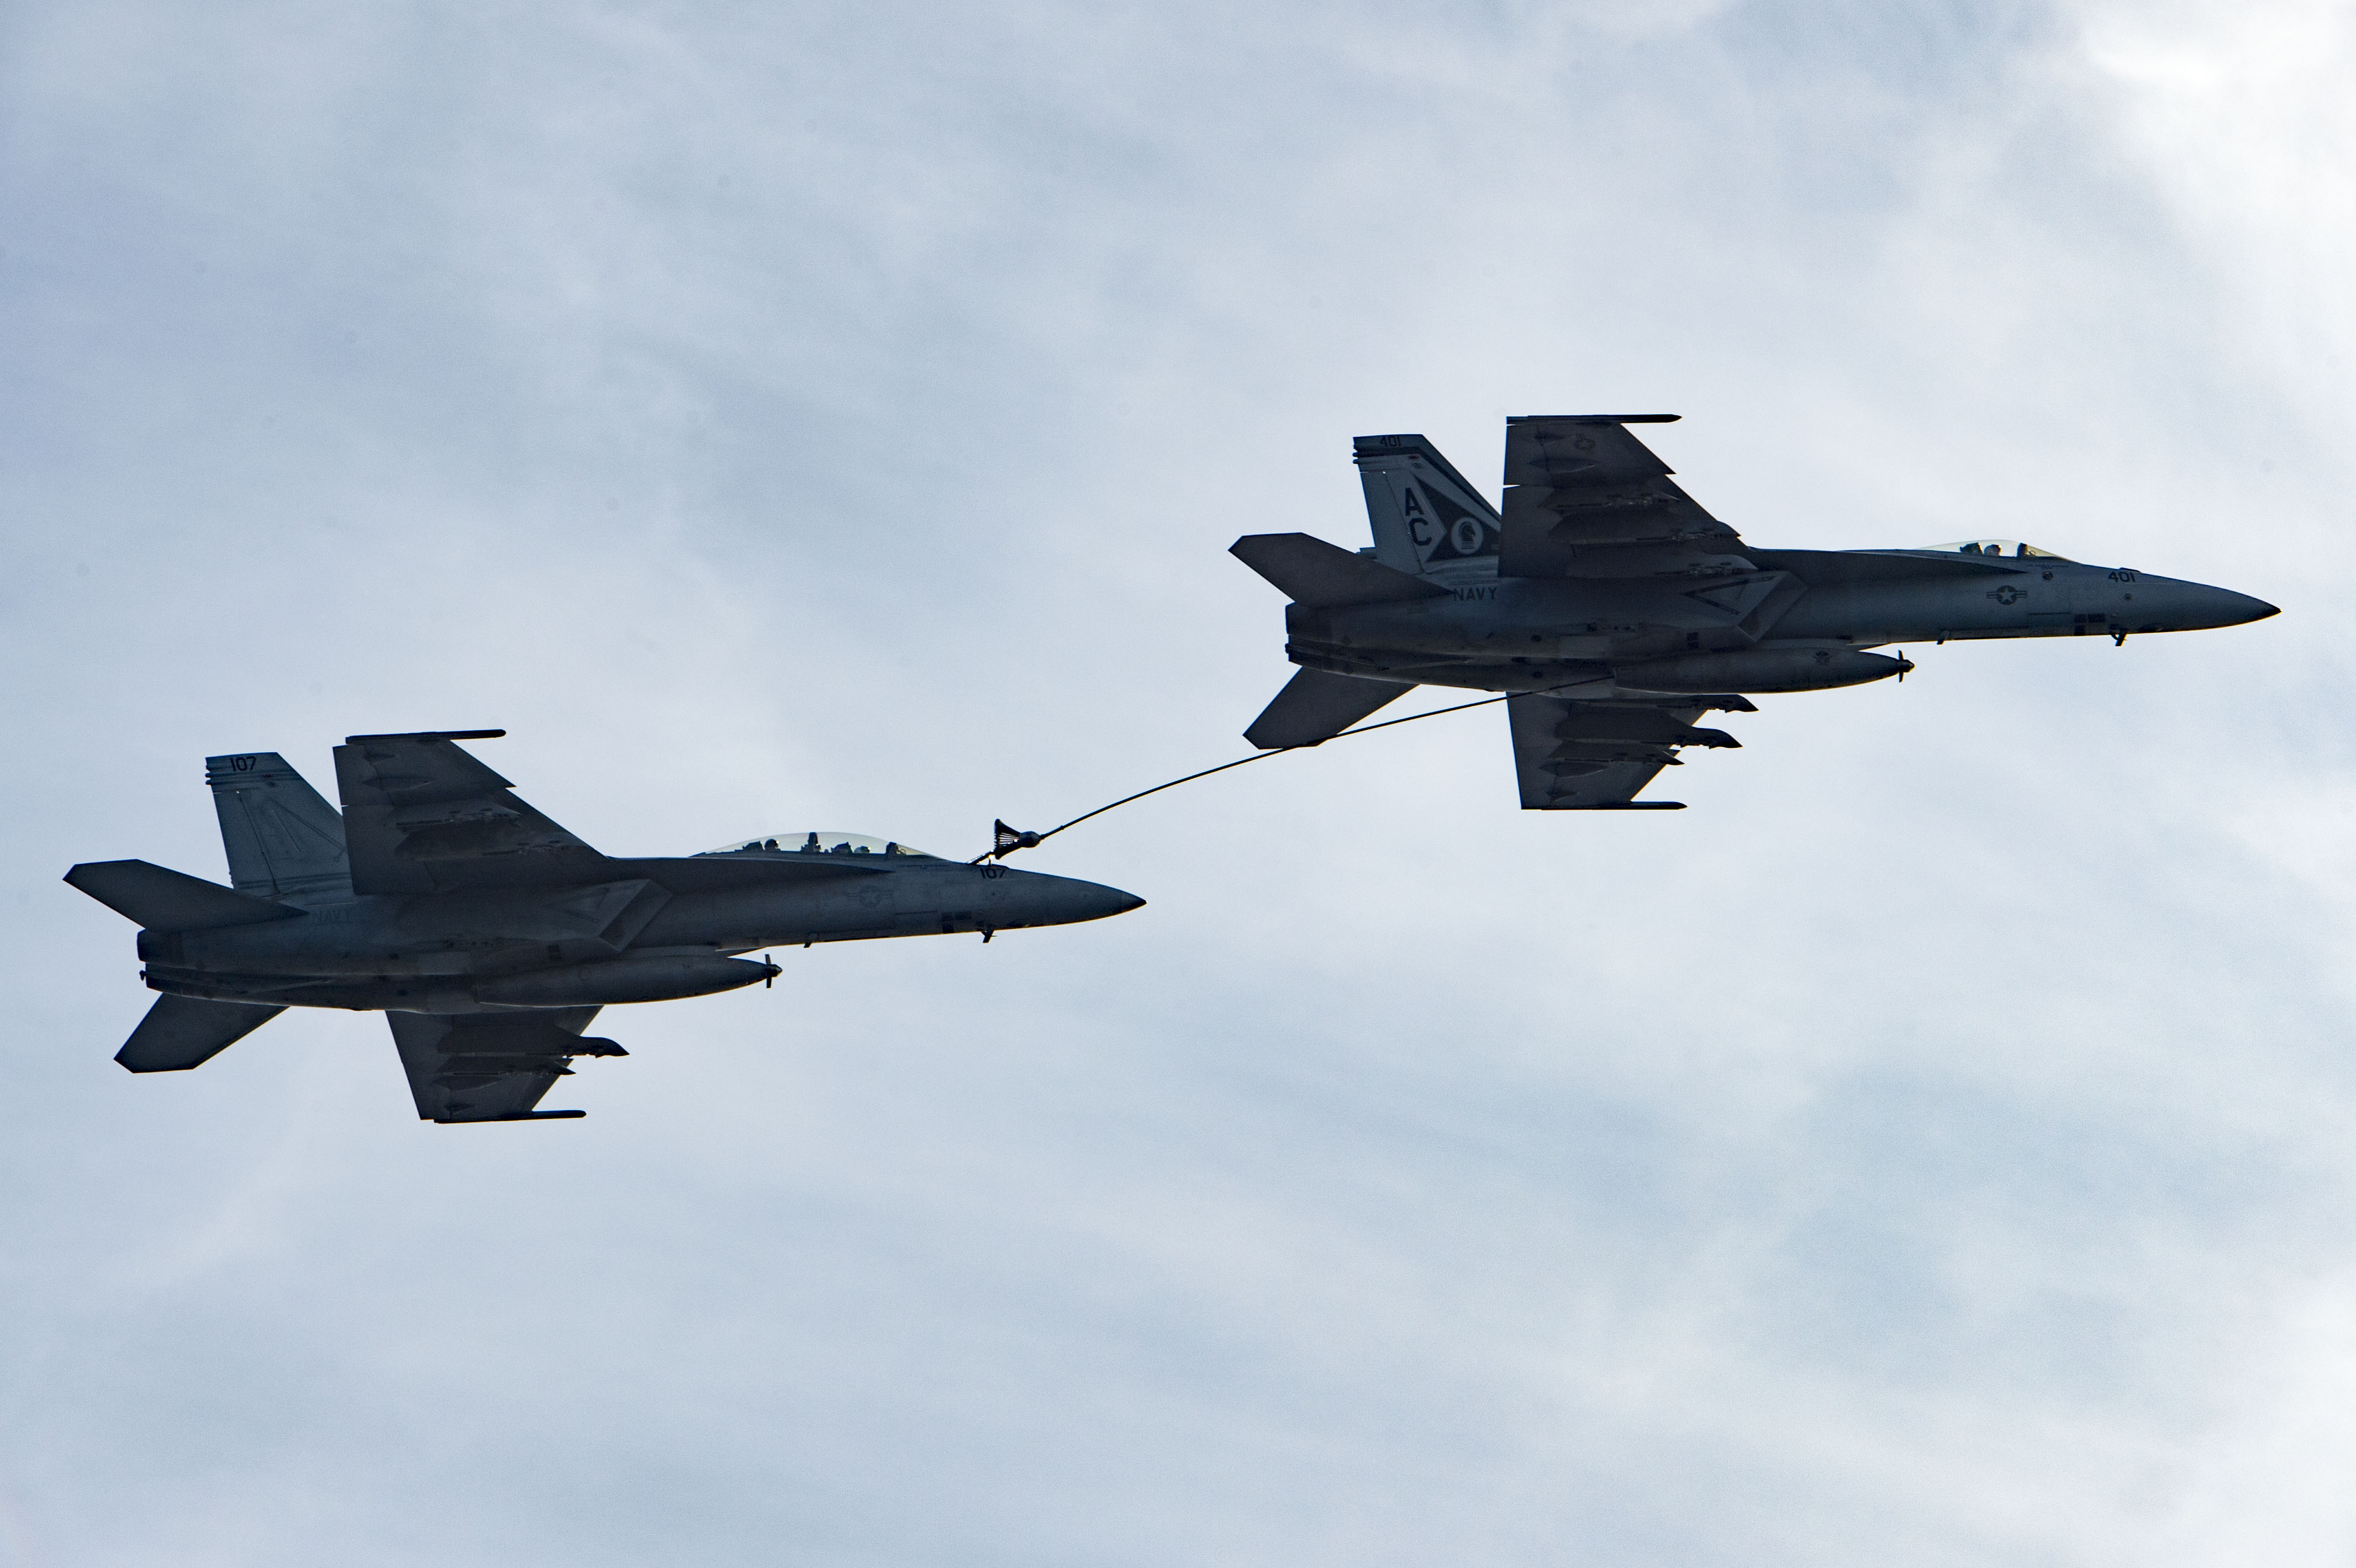 An F/A-18F Super Hornet assigned to the Fighting Swordsmen of Strike Fighter Squadron (VFA) 32 (left) receives fuel from an F/A-18E Super Hornet assigned to the Gunslingers of Strike Fighter Squadron (VFA) 105 on April 19, 2016. US Navy photo.